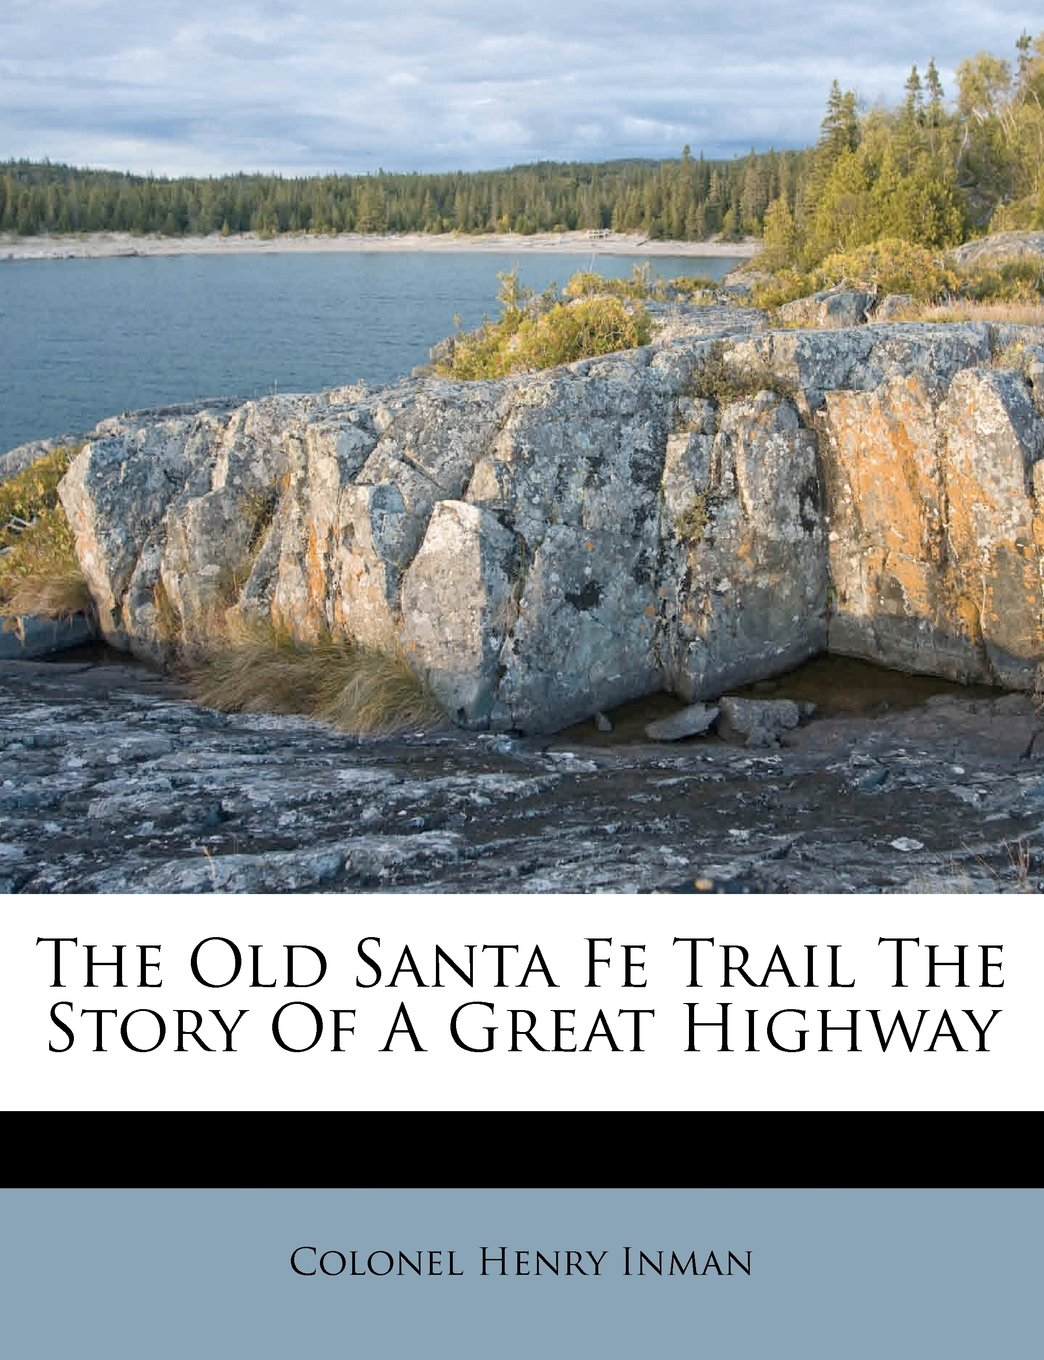 Download The Old Santa Fe Trail The Story Of A Great Highway PDF